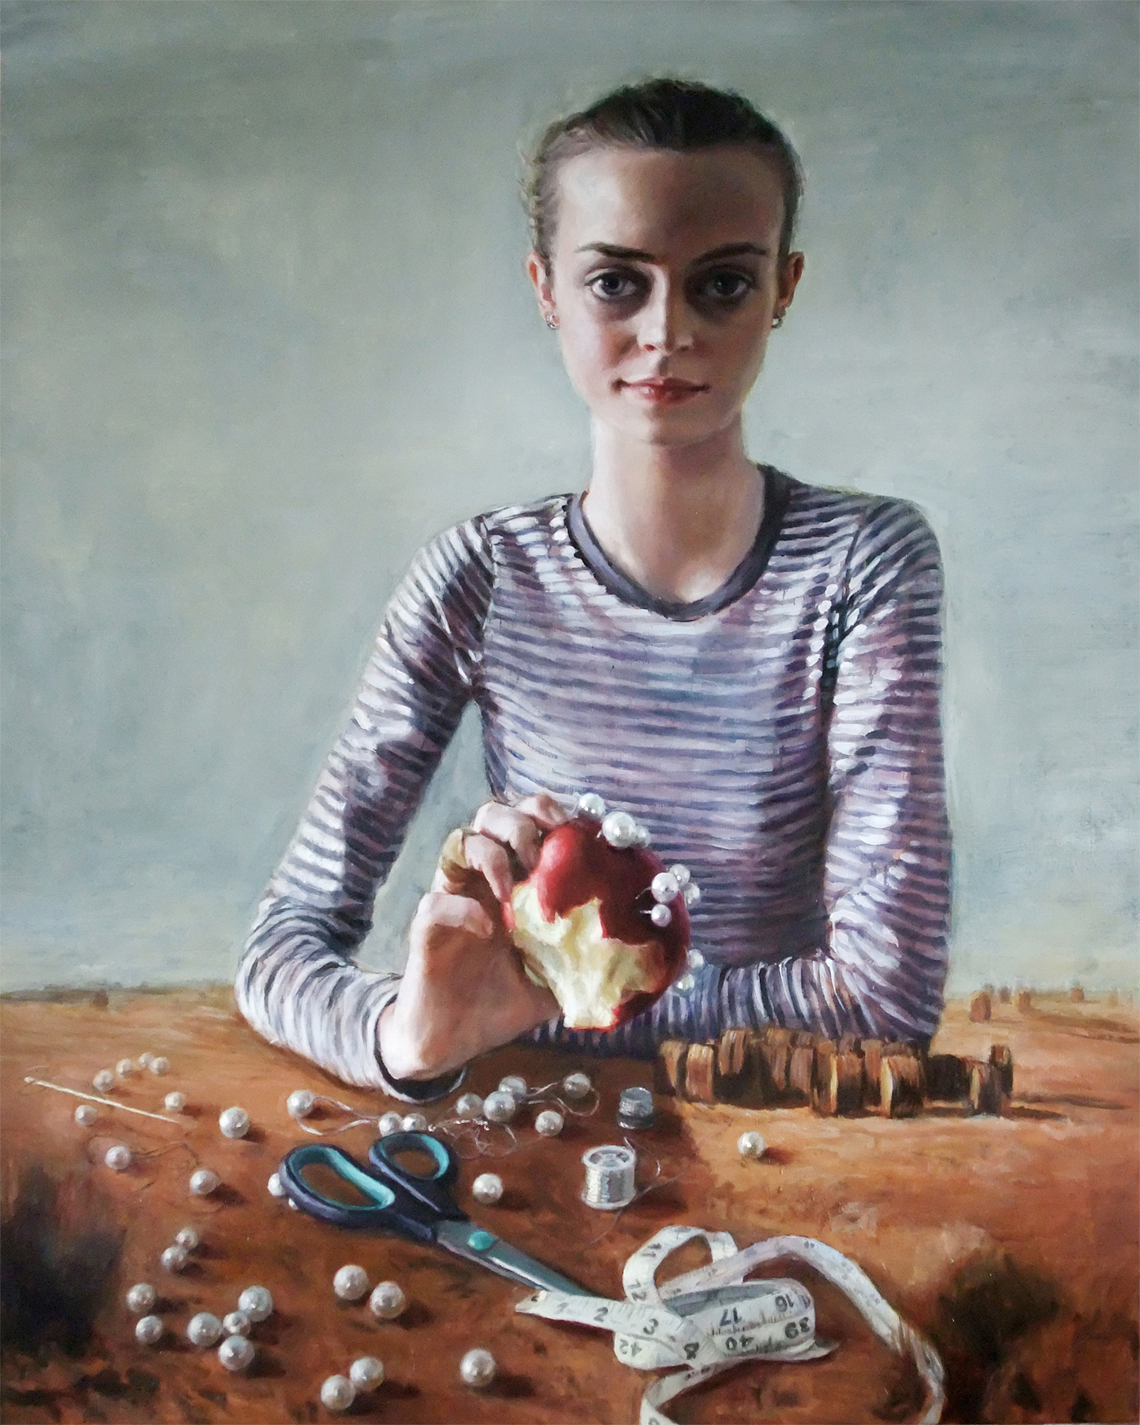 'One Perfect Day' 200x160cm, oil on linen